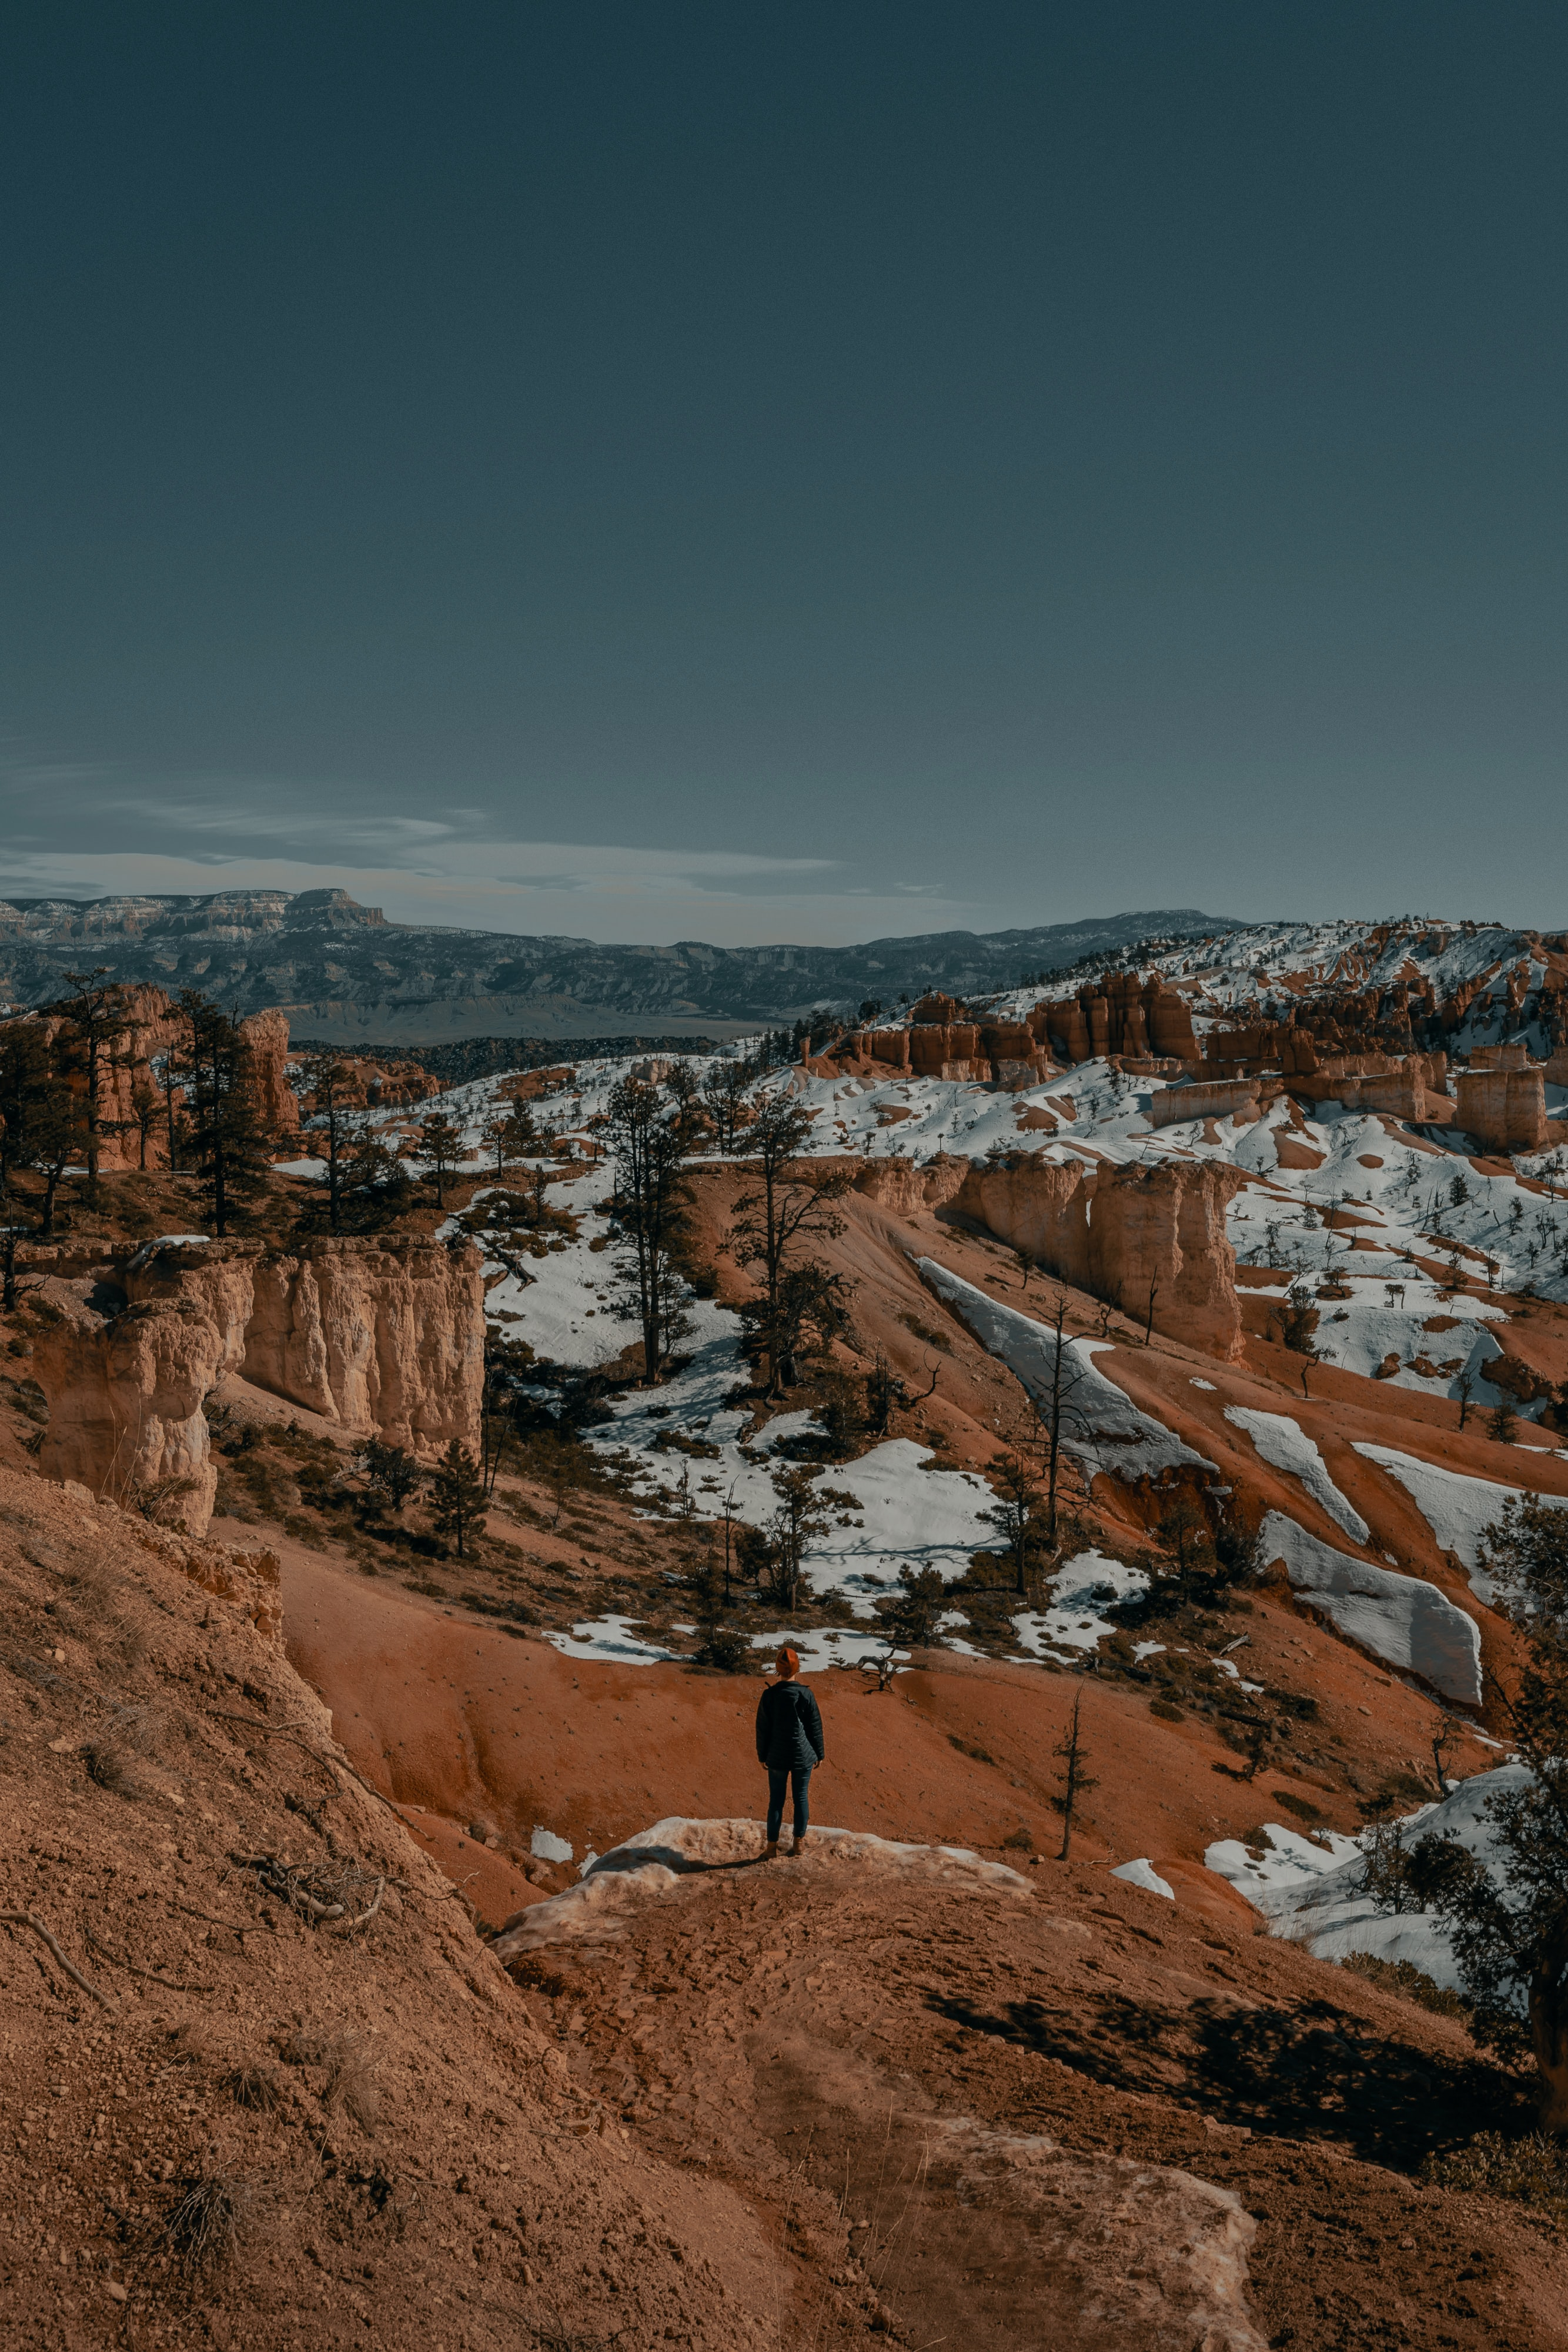 144863 download wallpaper Miscellanea, Miscellaneous, Human, Person, Loneliness, Canyon, Rocks, Snow screensavers and pictures for free